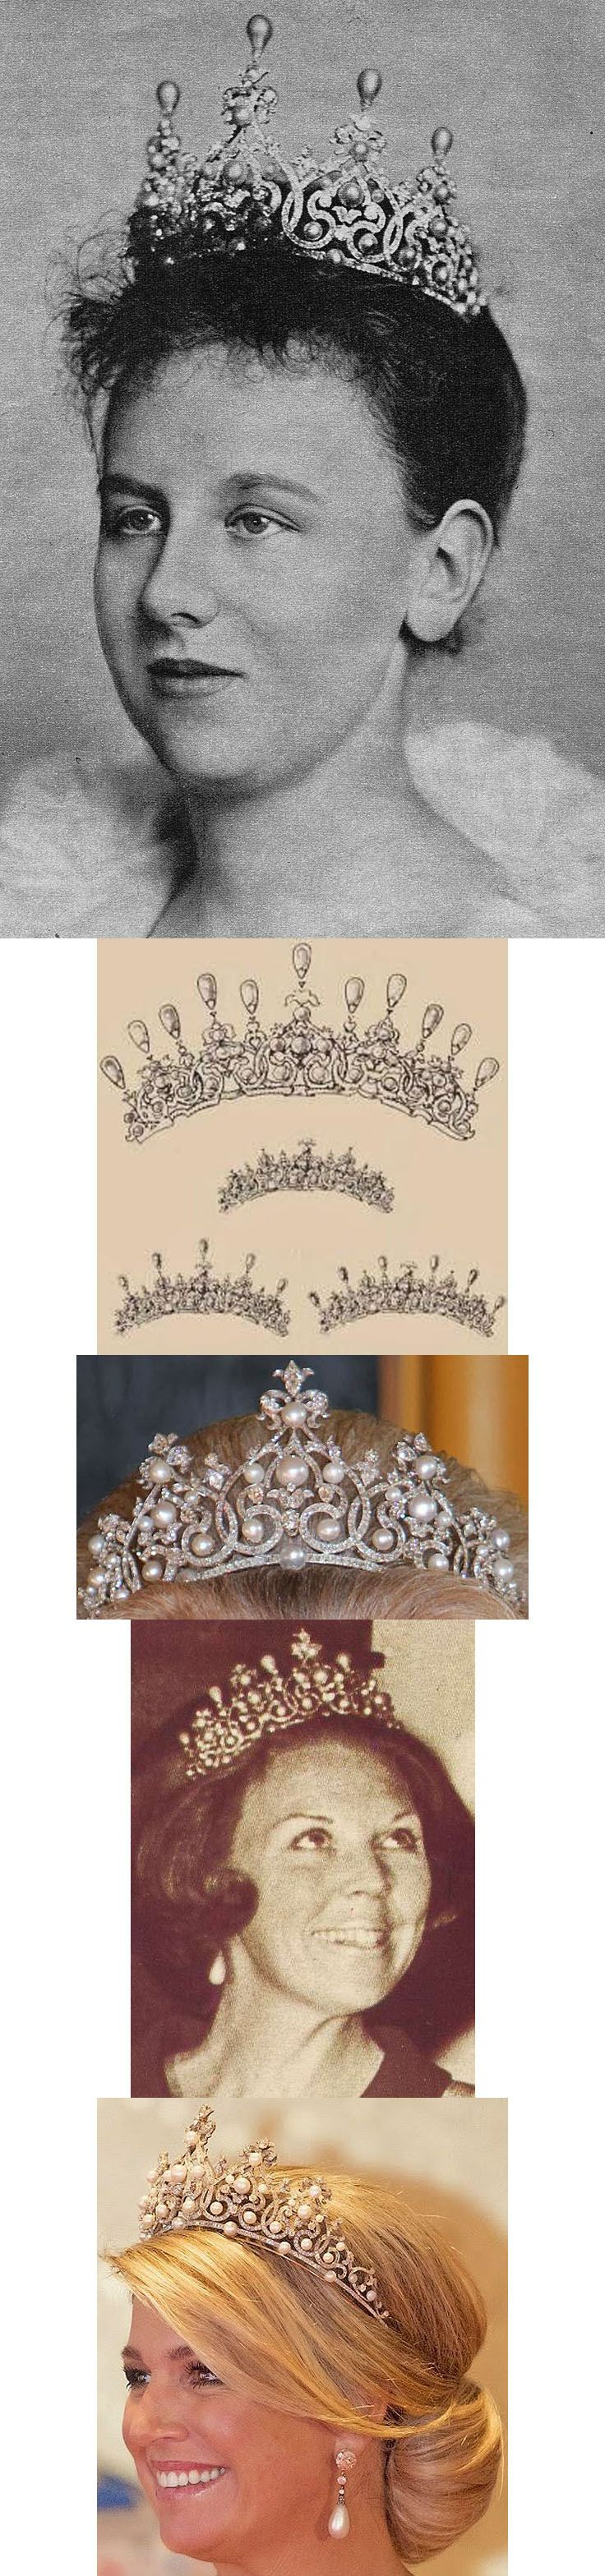 647 best crown jewels images on pinterest royal jewels crowns and